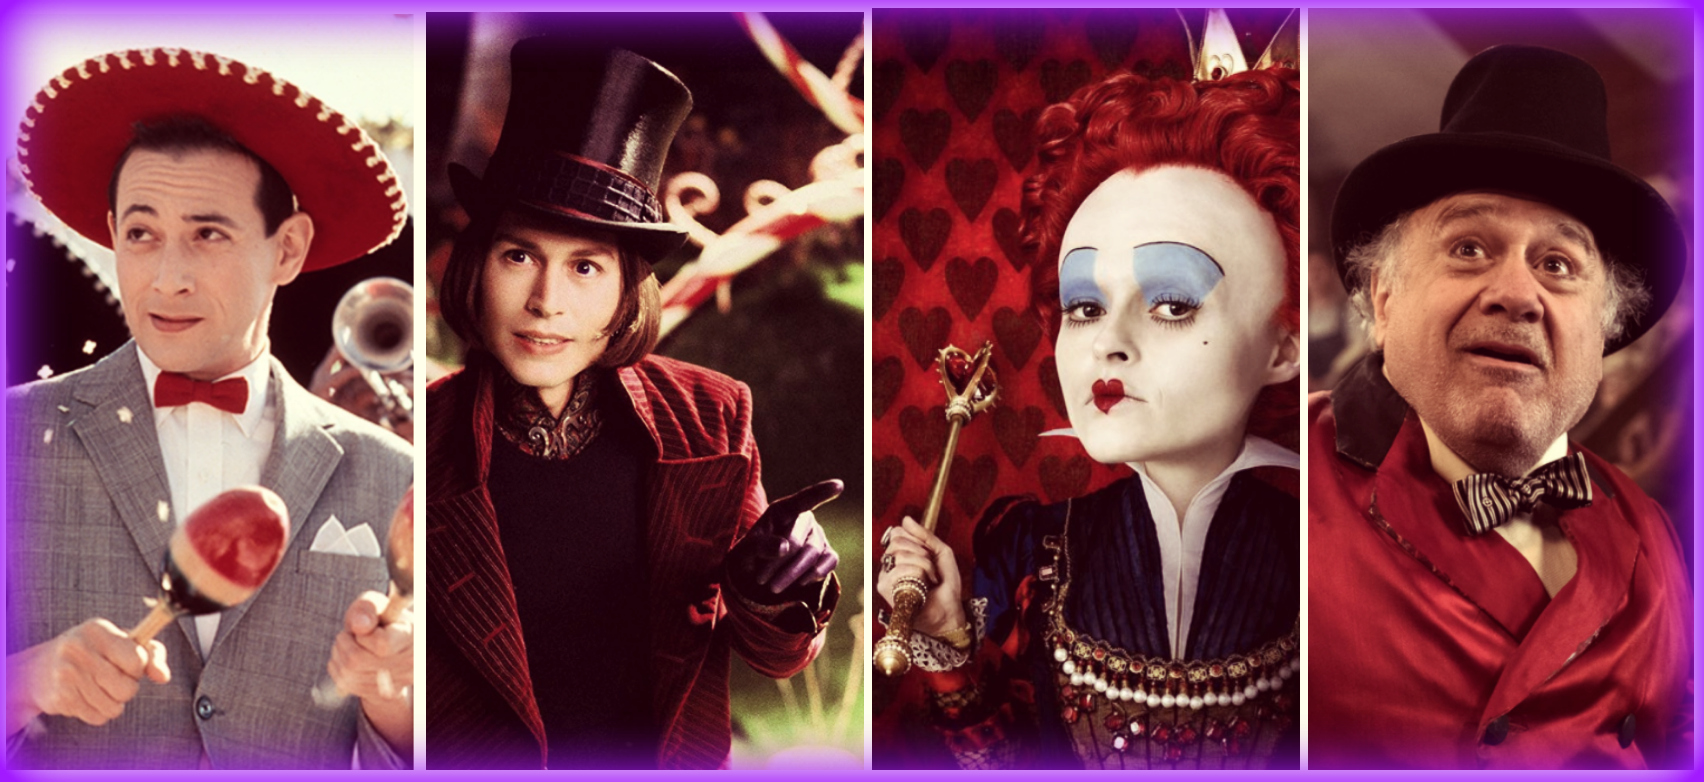 Filmography: Tim Burton Has Redefined Whimsy For Decades